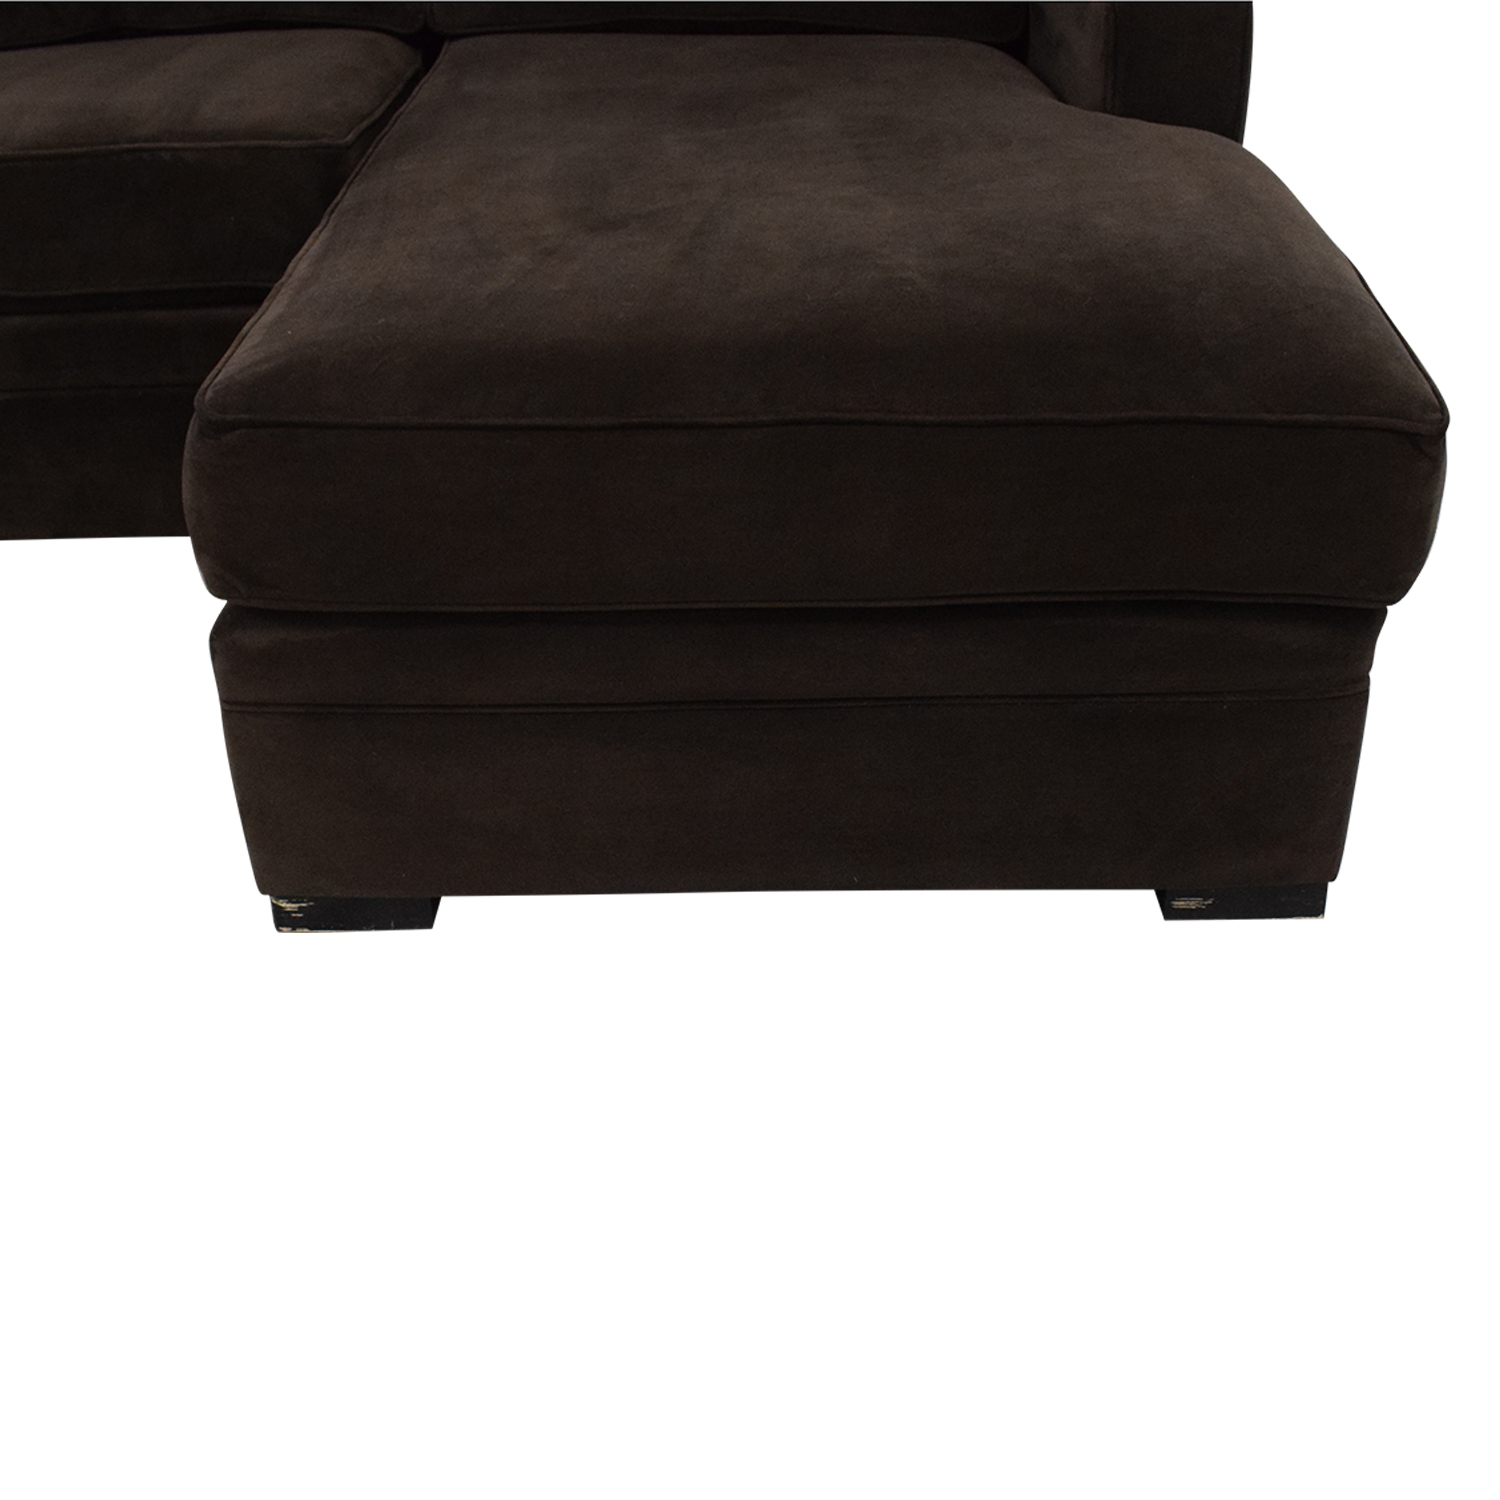 buy Star Furniture Star Furniture Juno Raf Sectional Sofa with Chaise online